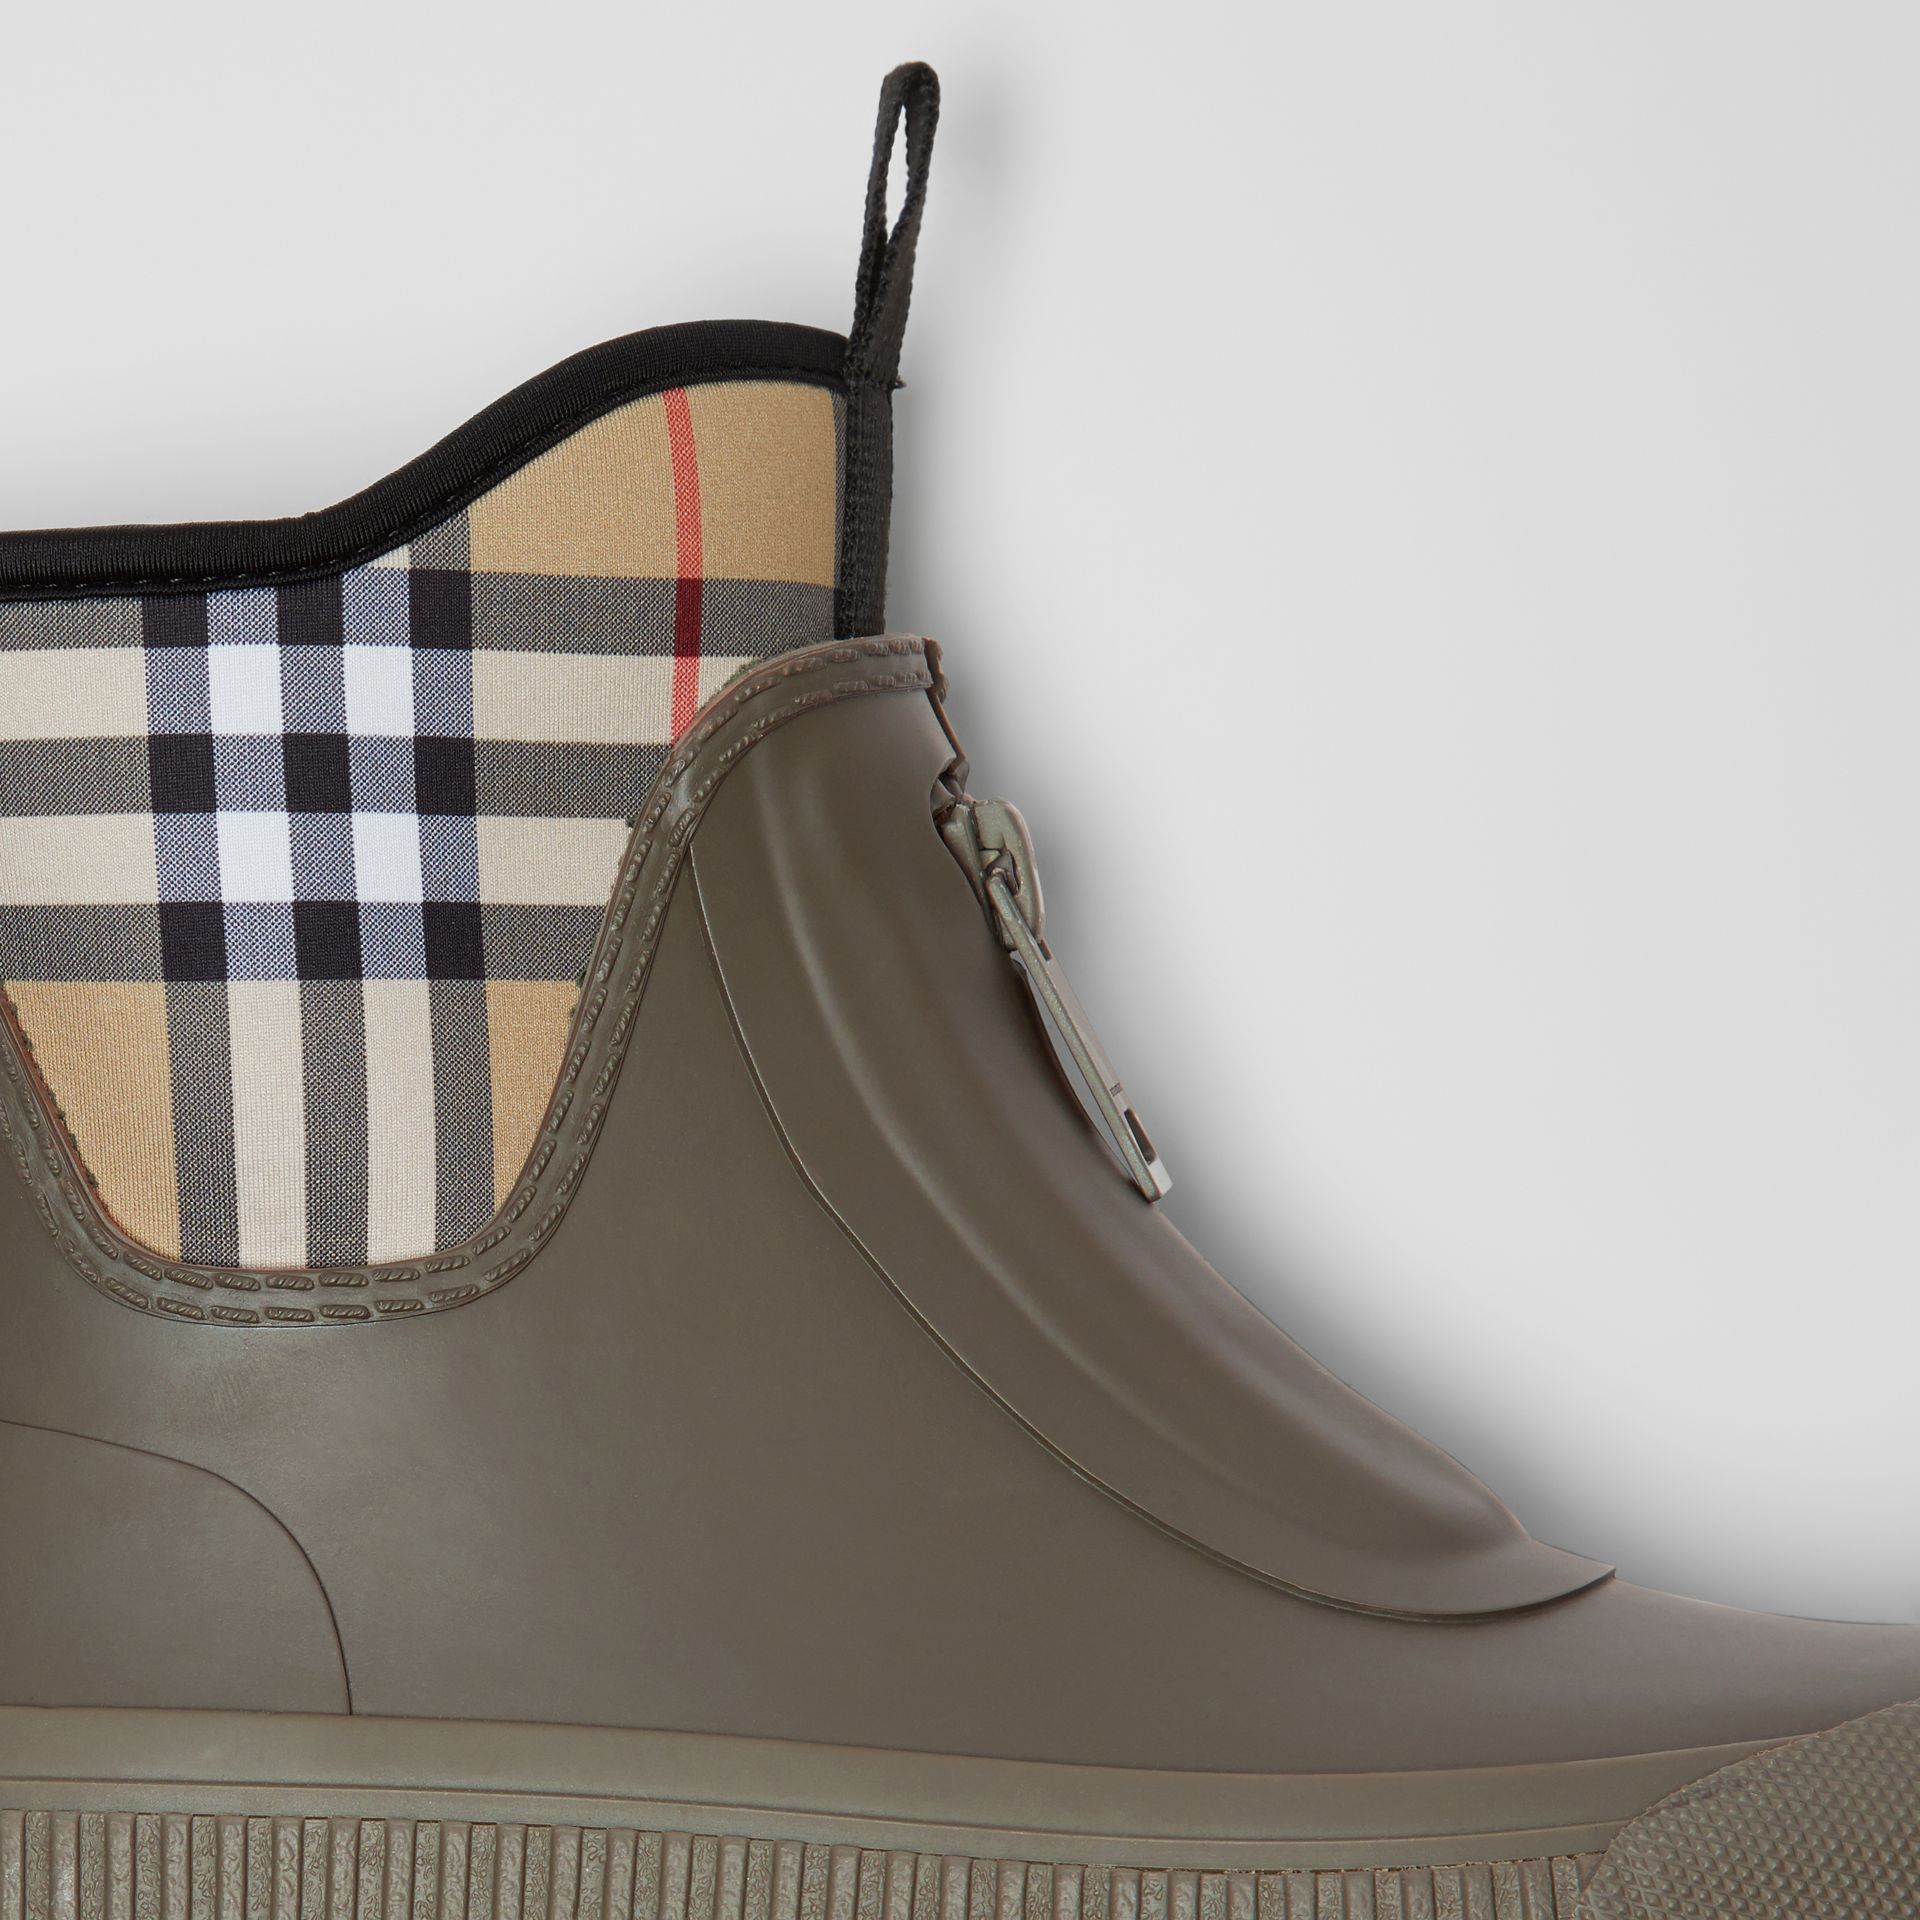 Vintage Check Neoprene and Rubber Rain Boots in Military Green - Women | Burberry United States - gallery image 1